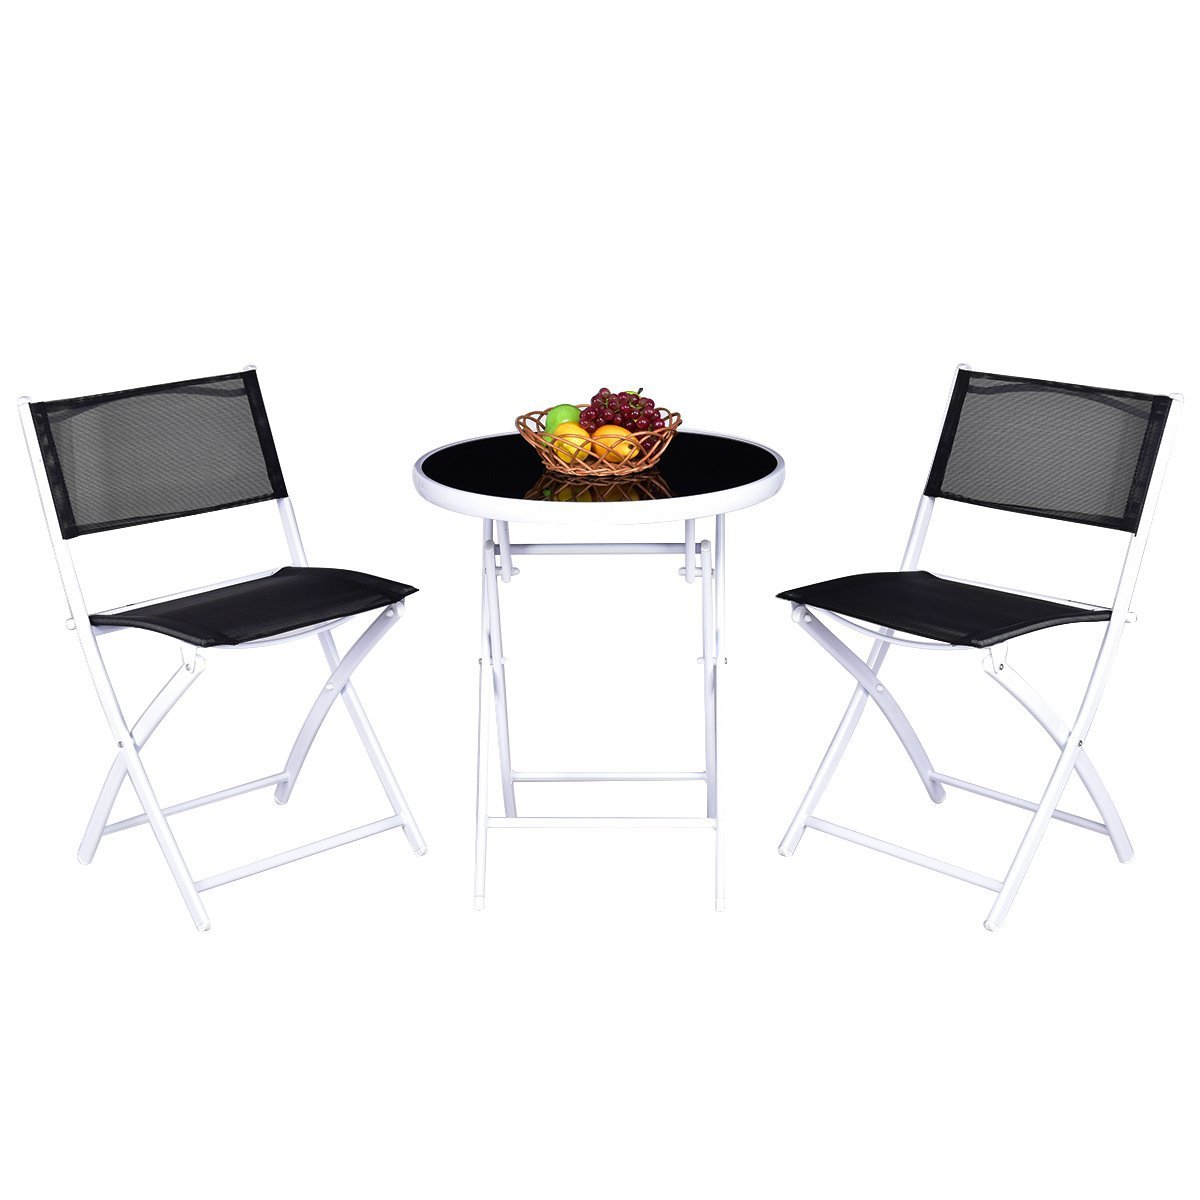 Giantex 3 PCS Folding Bistro Table Chairs Set Garden Backyard Patio Outdoor Furniture (Black)